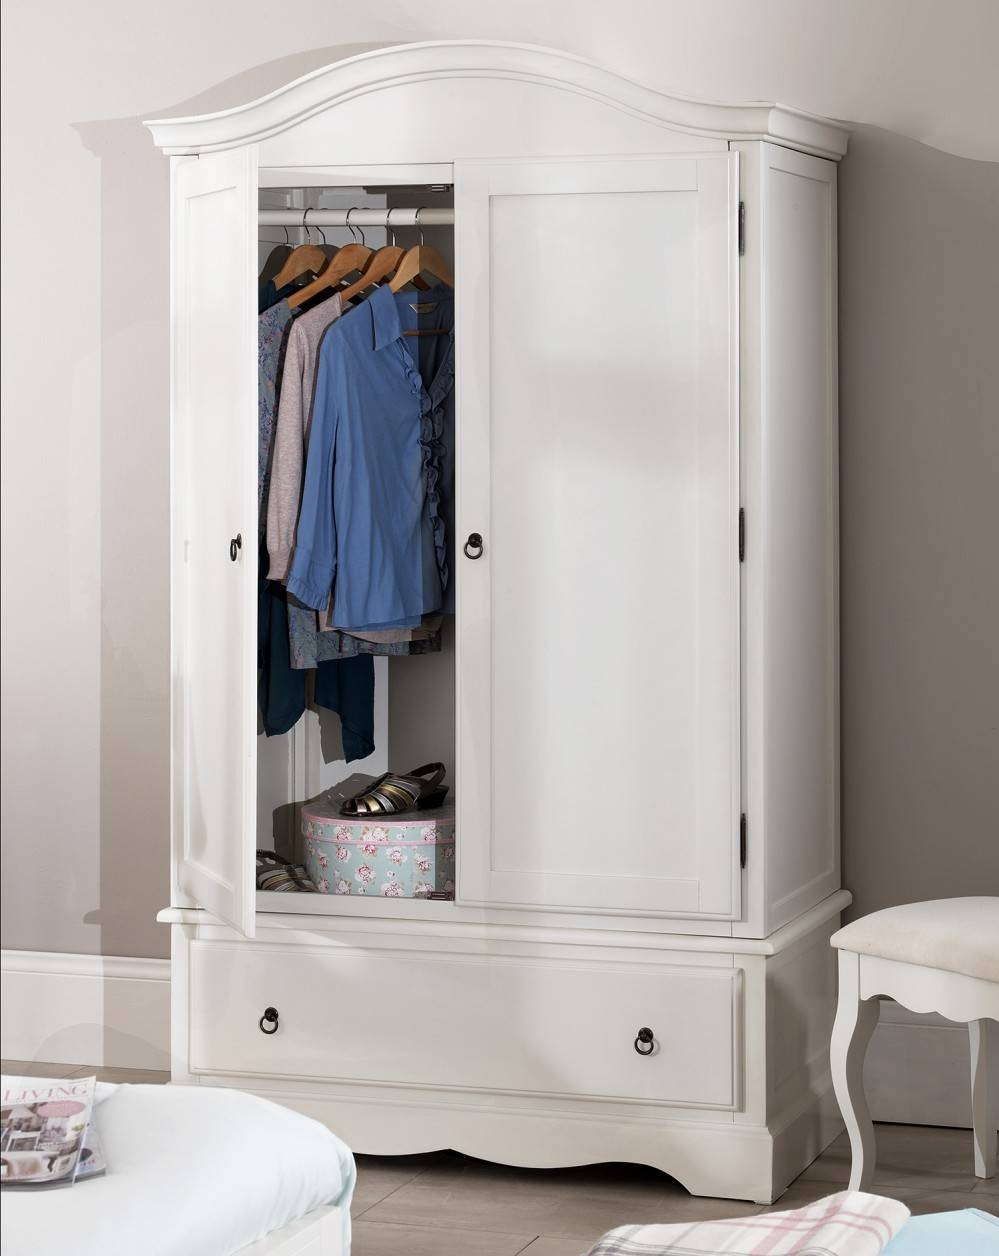 Romance White Bedroom Furniture, Bedside Table, Chest Of Drawers intended for Double Rail White Wardrobes (Image 11 of 21)